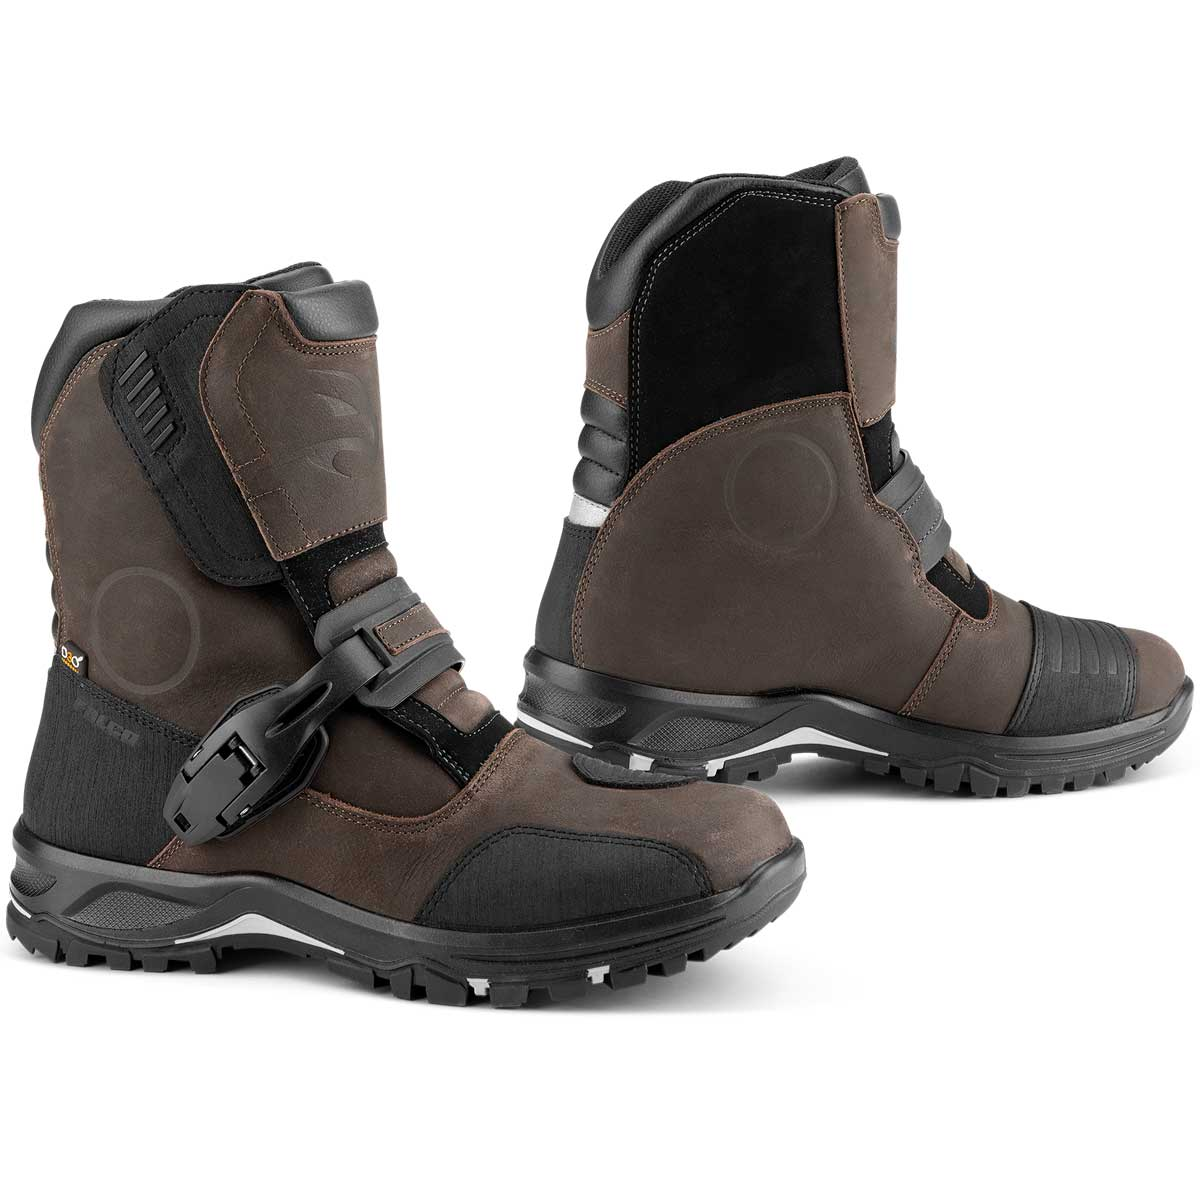 MARSHALL Short Adventure Motorcycle Boots